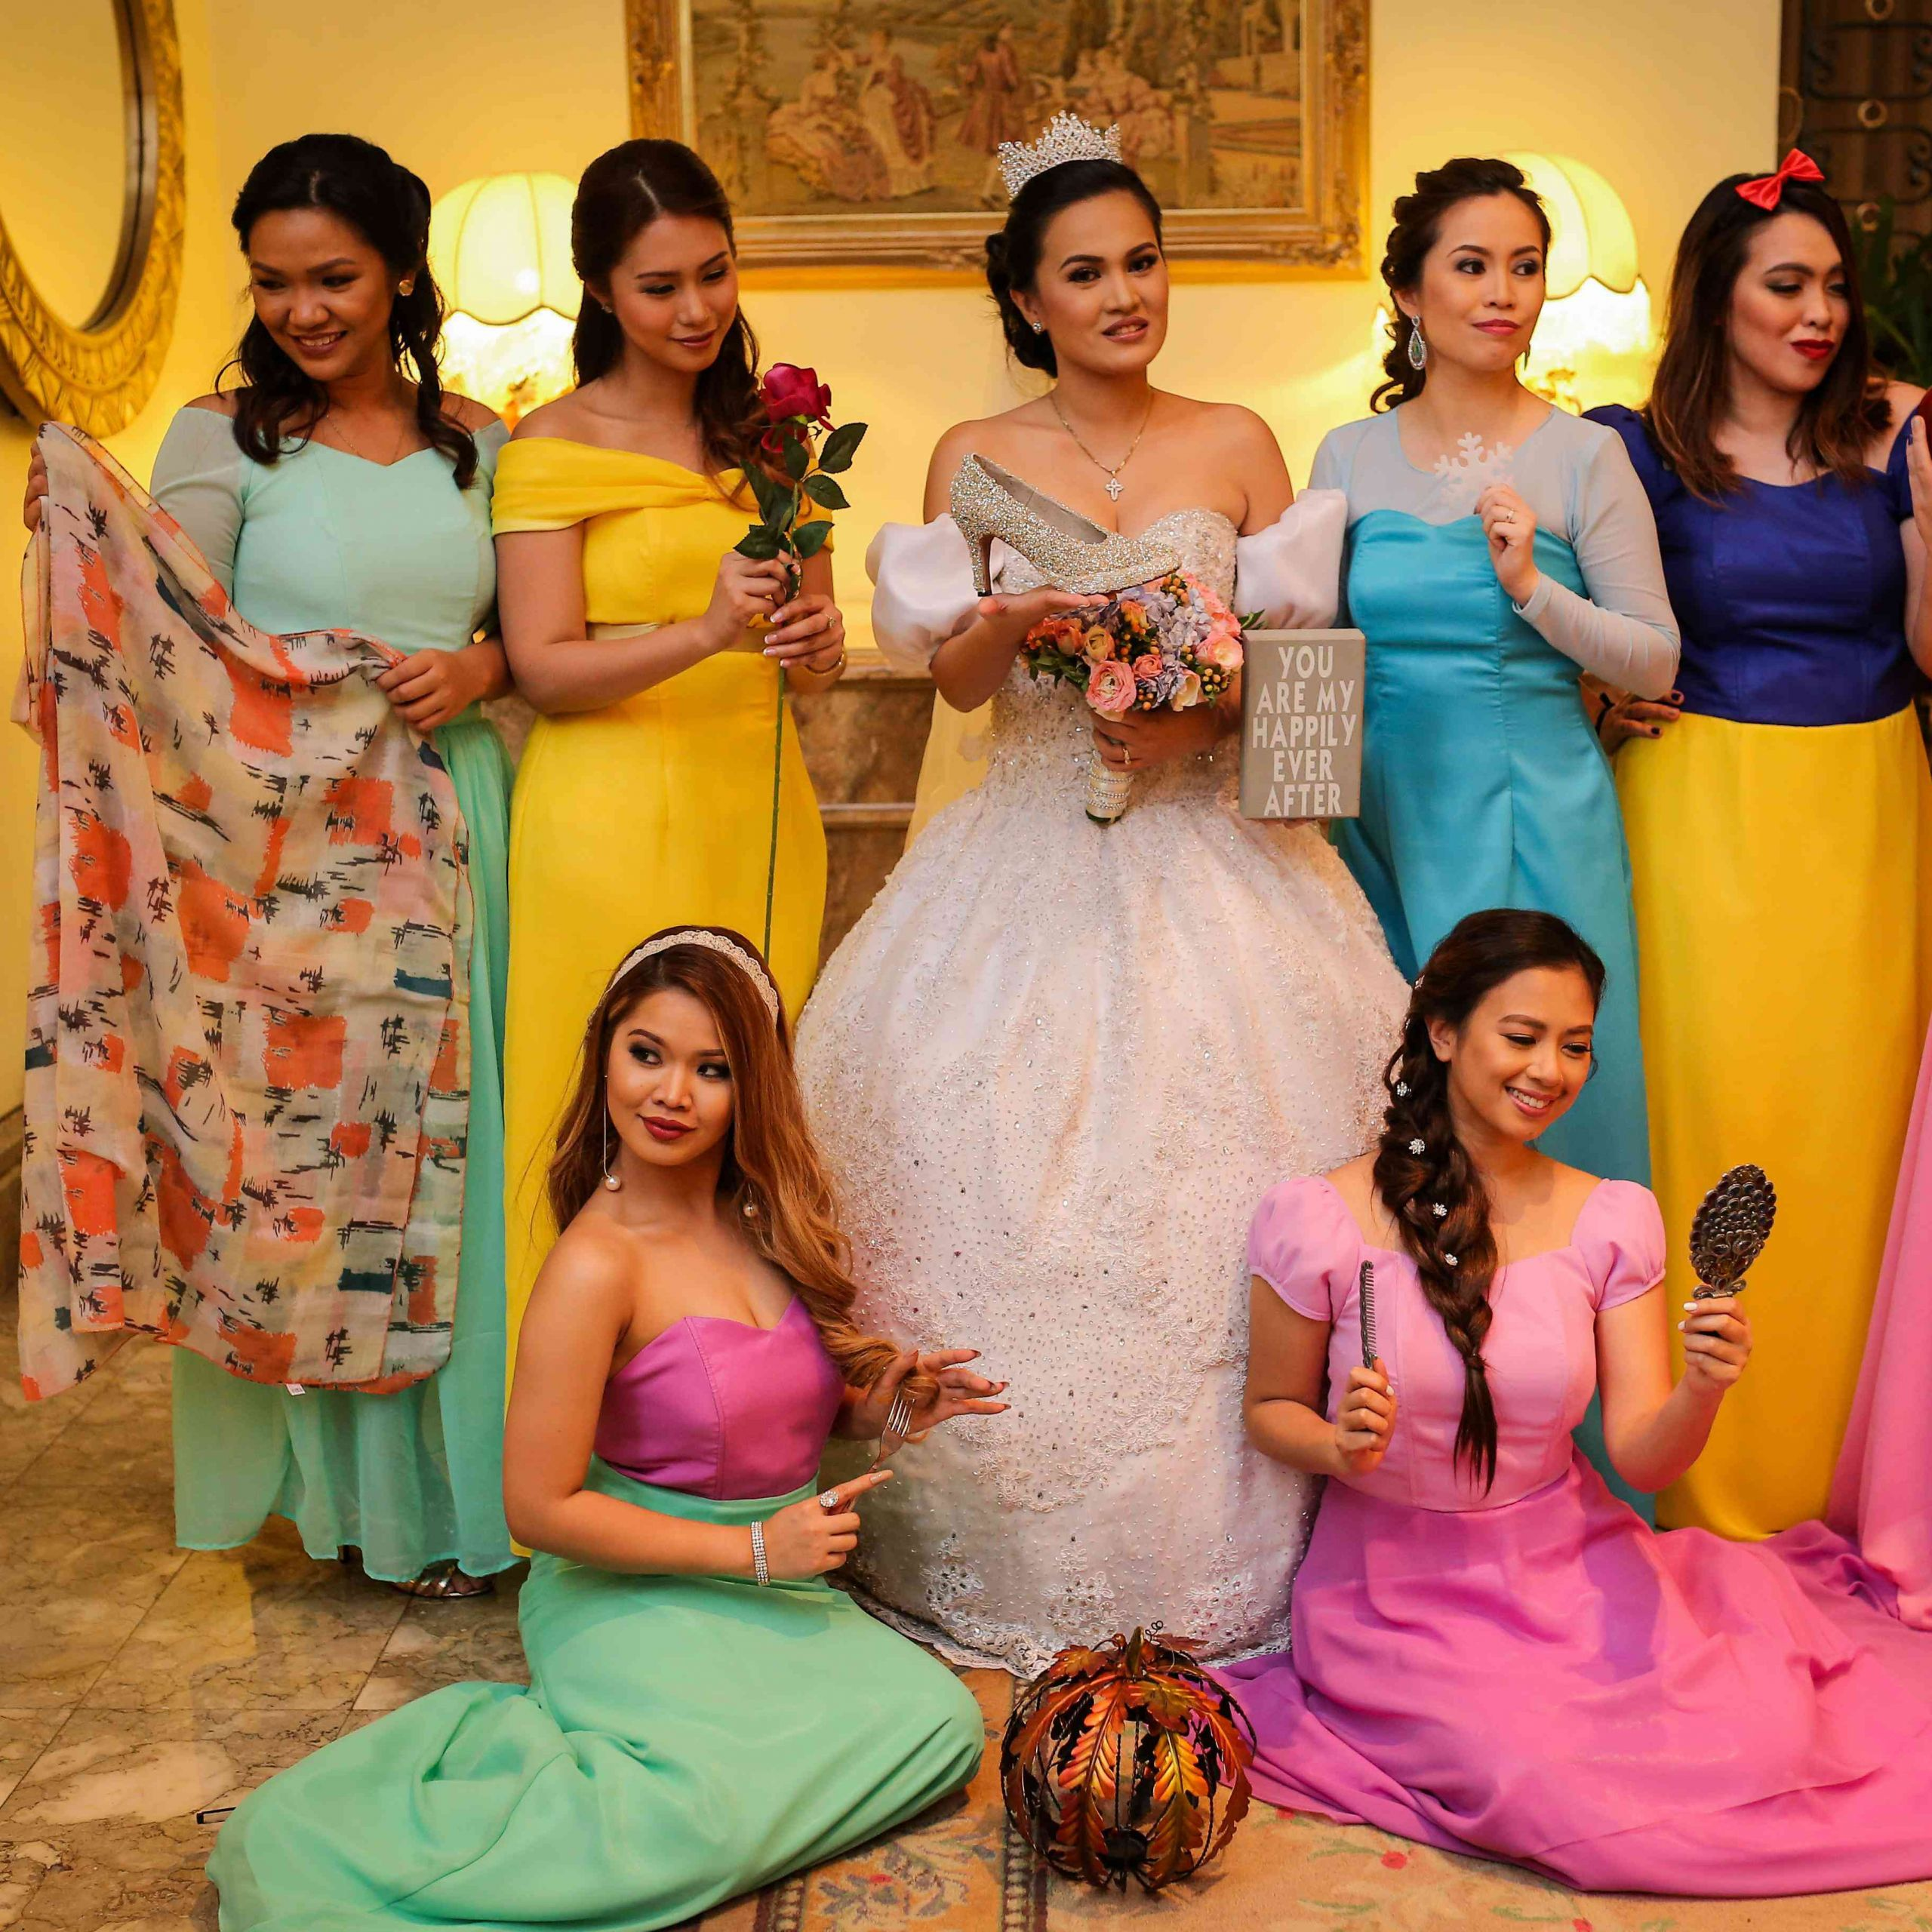 Princess Themed Wedding  This Over the Top Disney Princess Themed Wedding Will